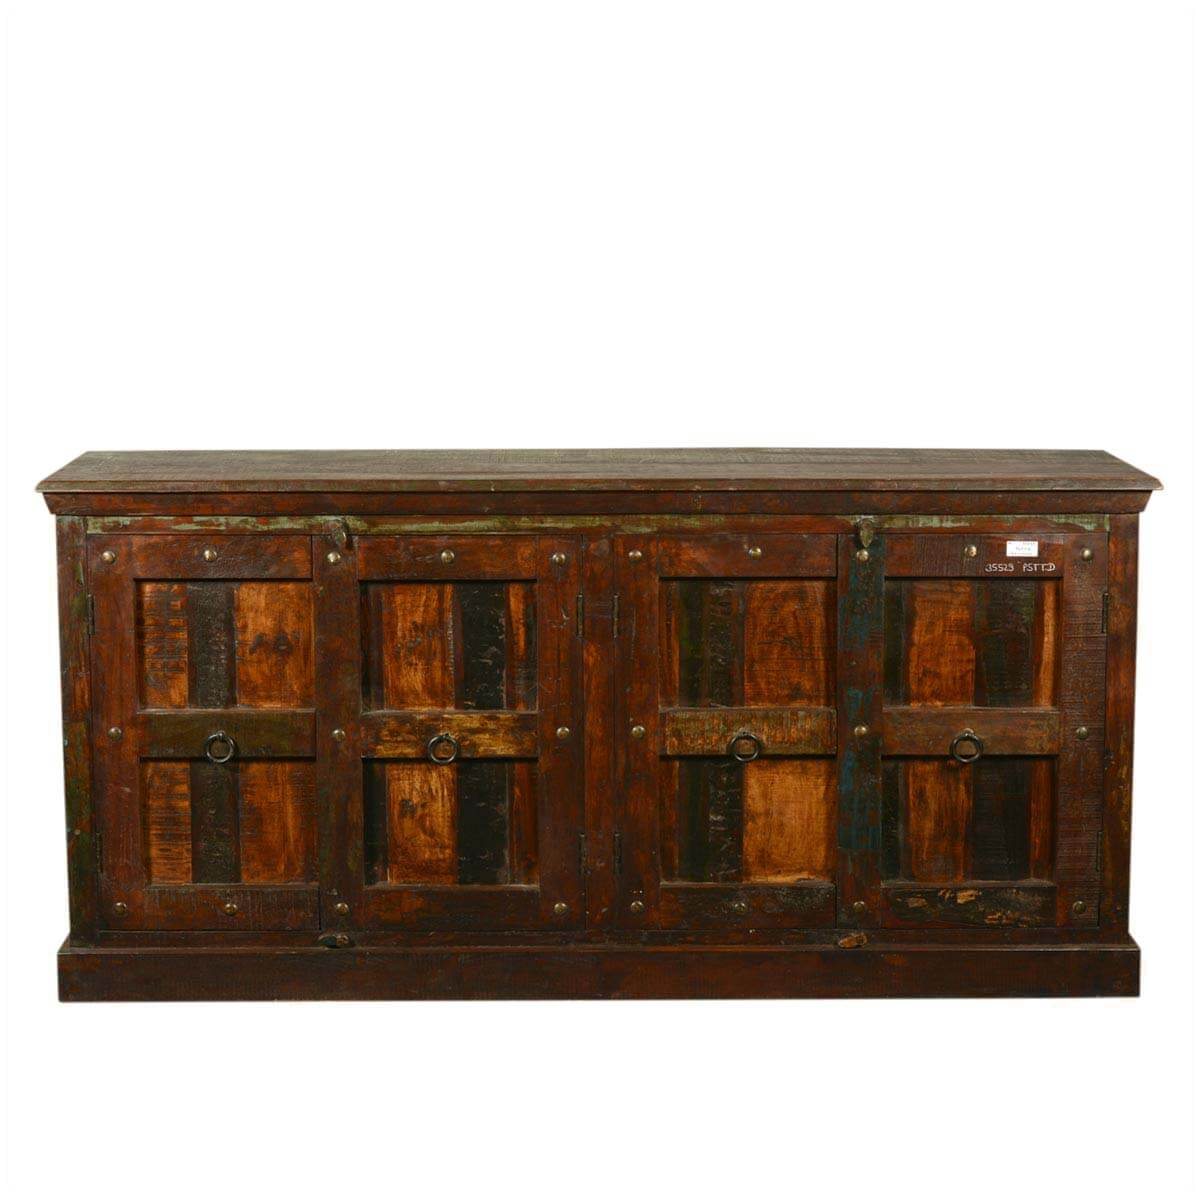 72 Quot Large Rustic Reclaimed Wood Furniture Sideboard Buffet